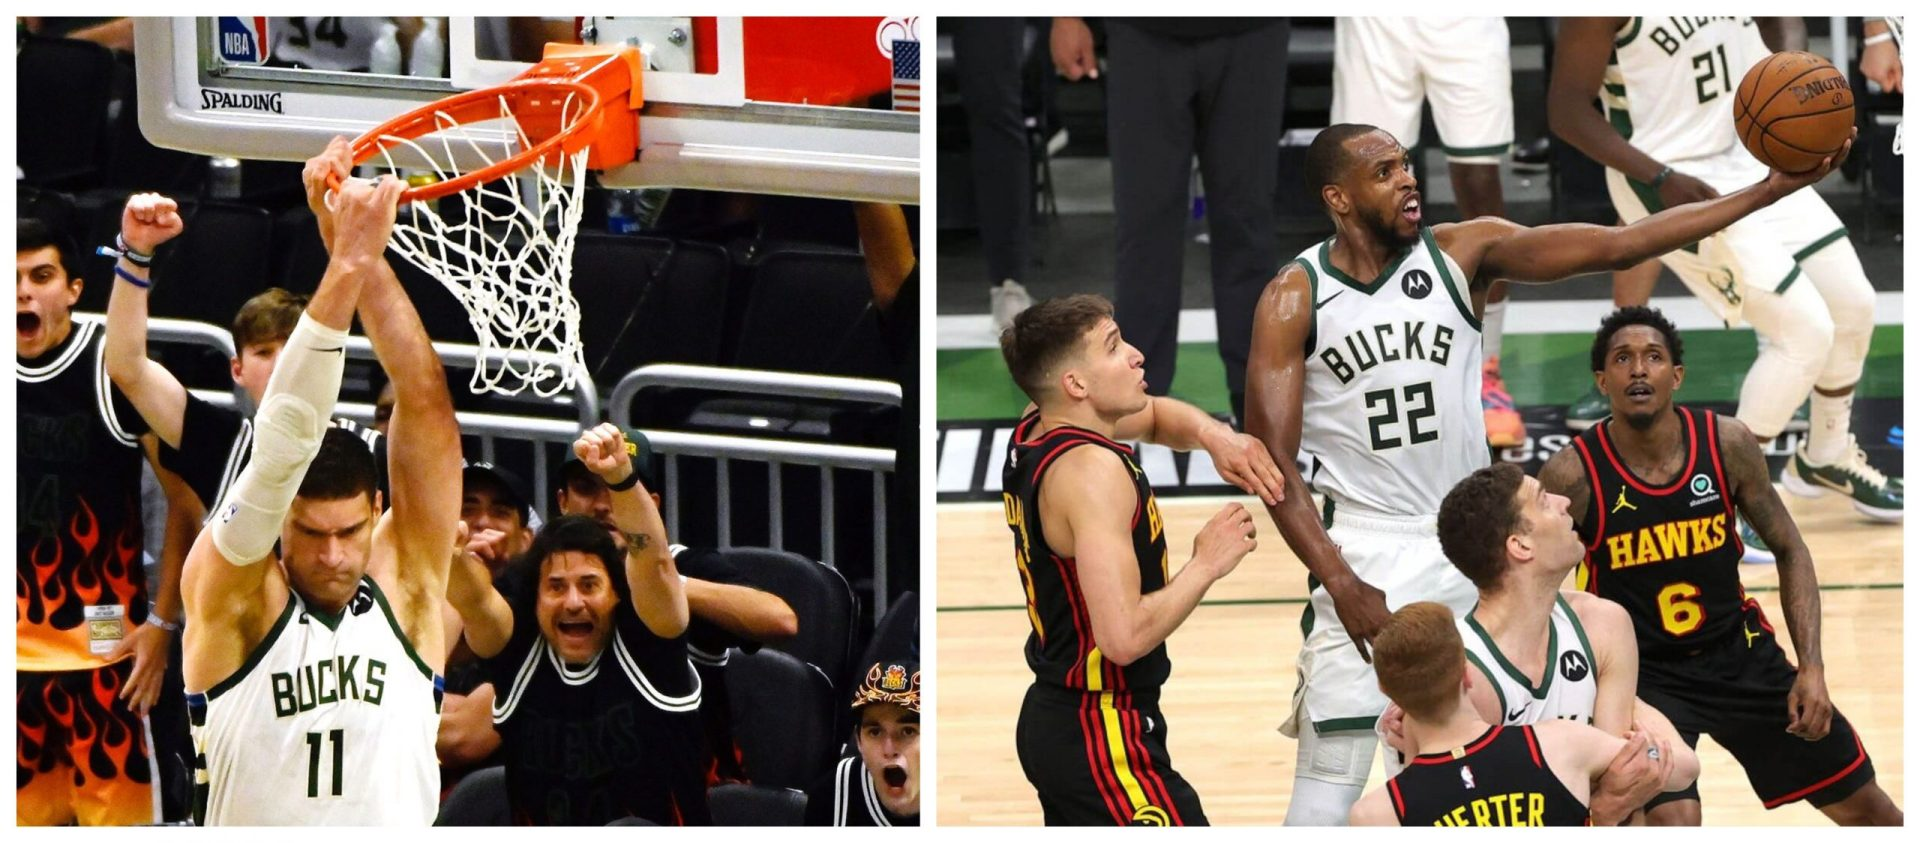 NBA Playoffs Review: Giannis-less Bucks win Game 6 to claim a 3-2 lead - THE SPORTS ROOM